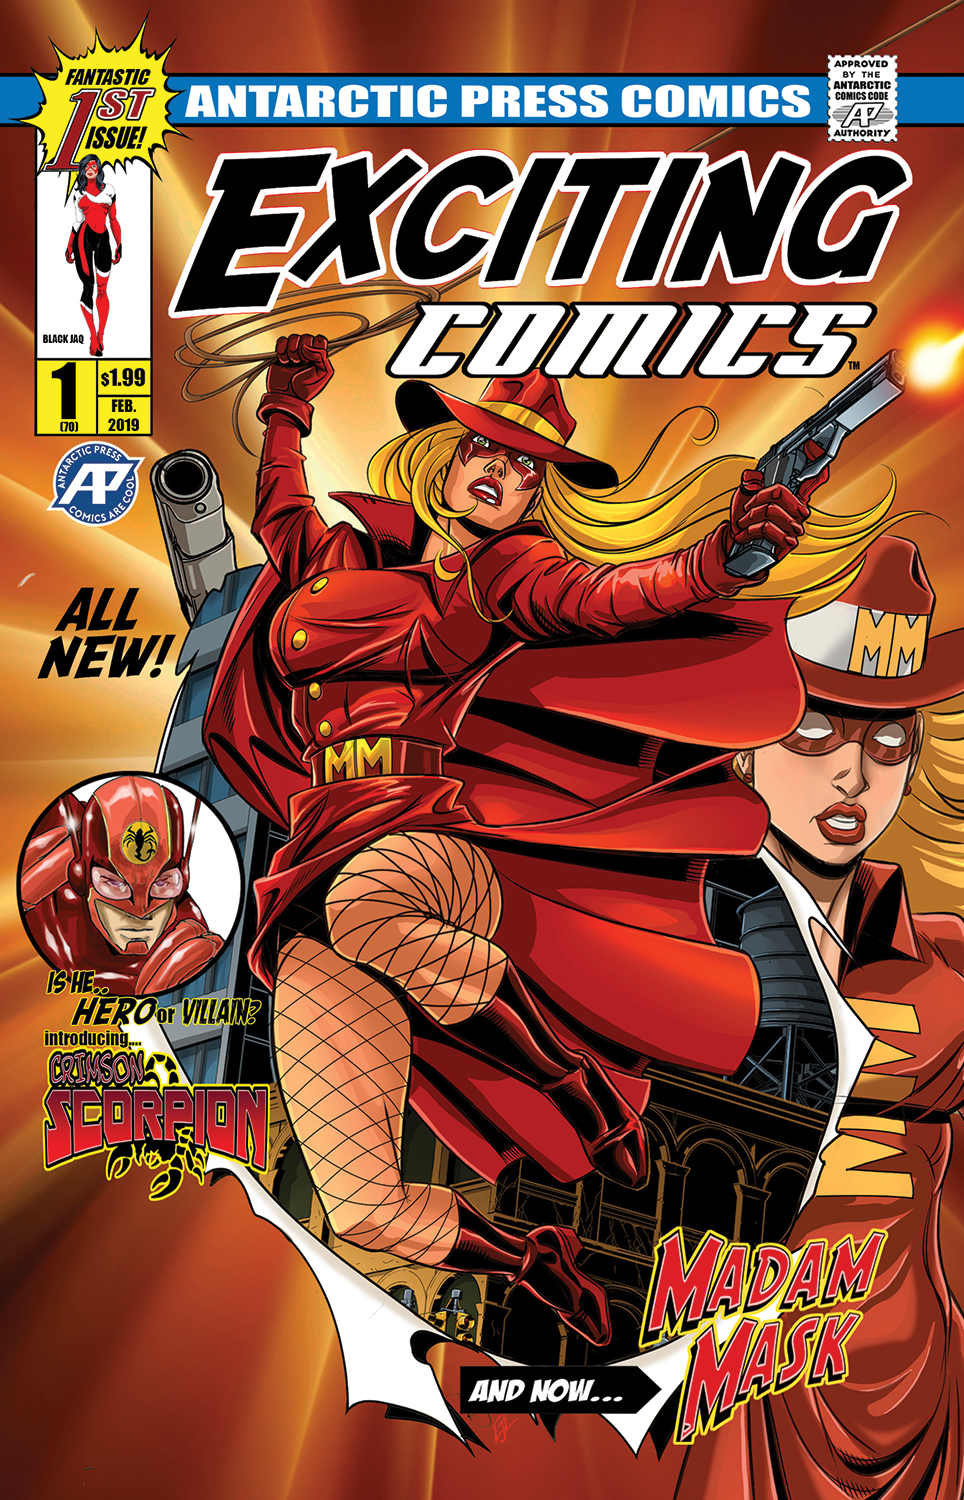 EXCITING COMICS #1 MAIN CVR